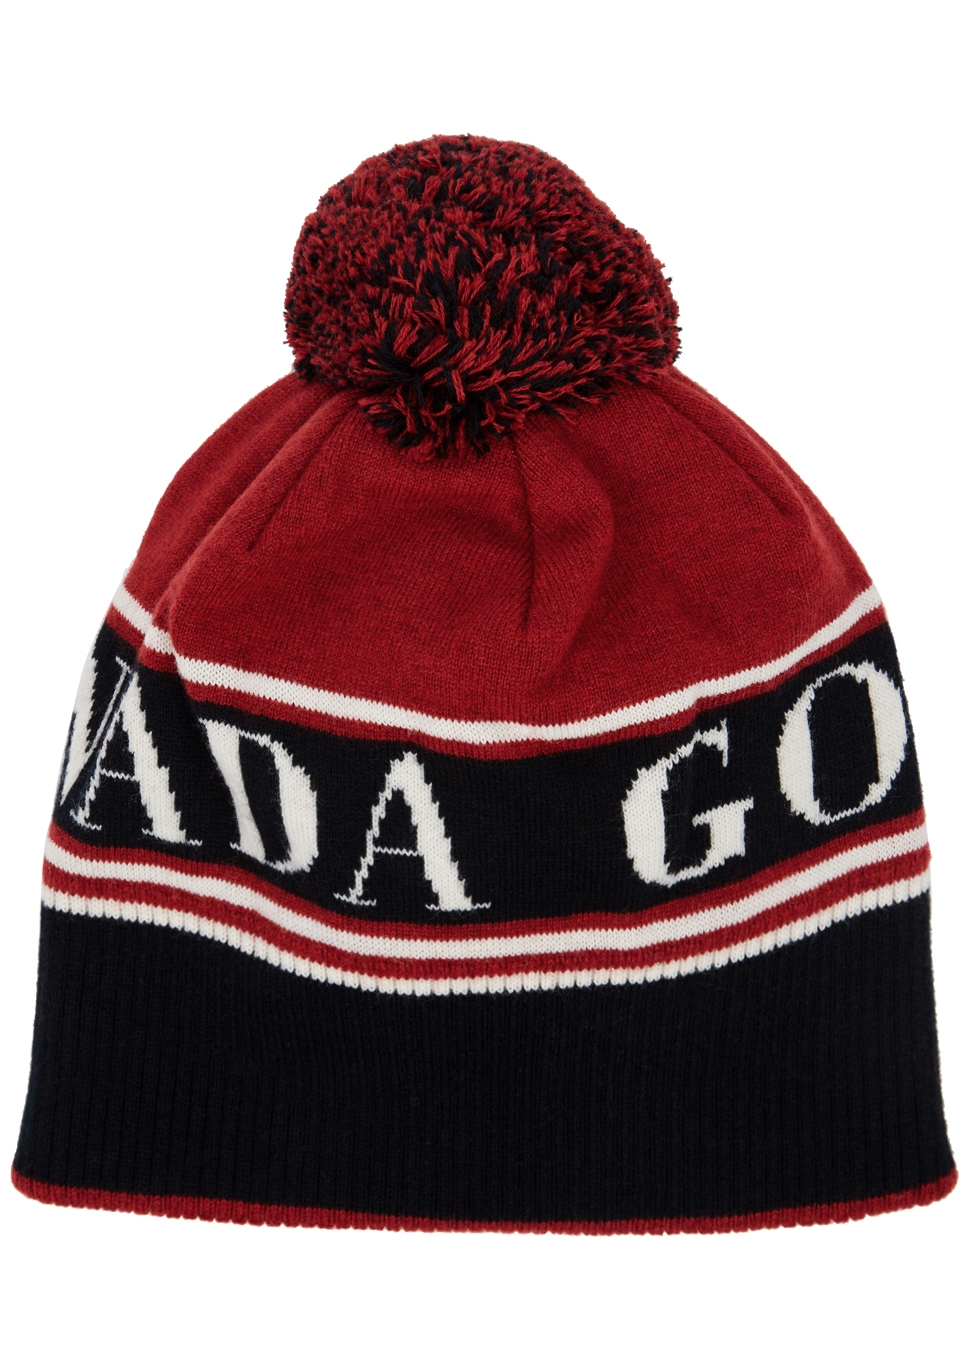 Logo Toque Beanie Hat W/ Pompom in Red